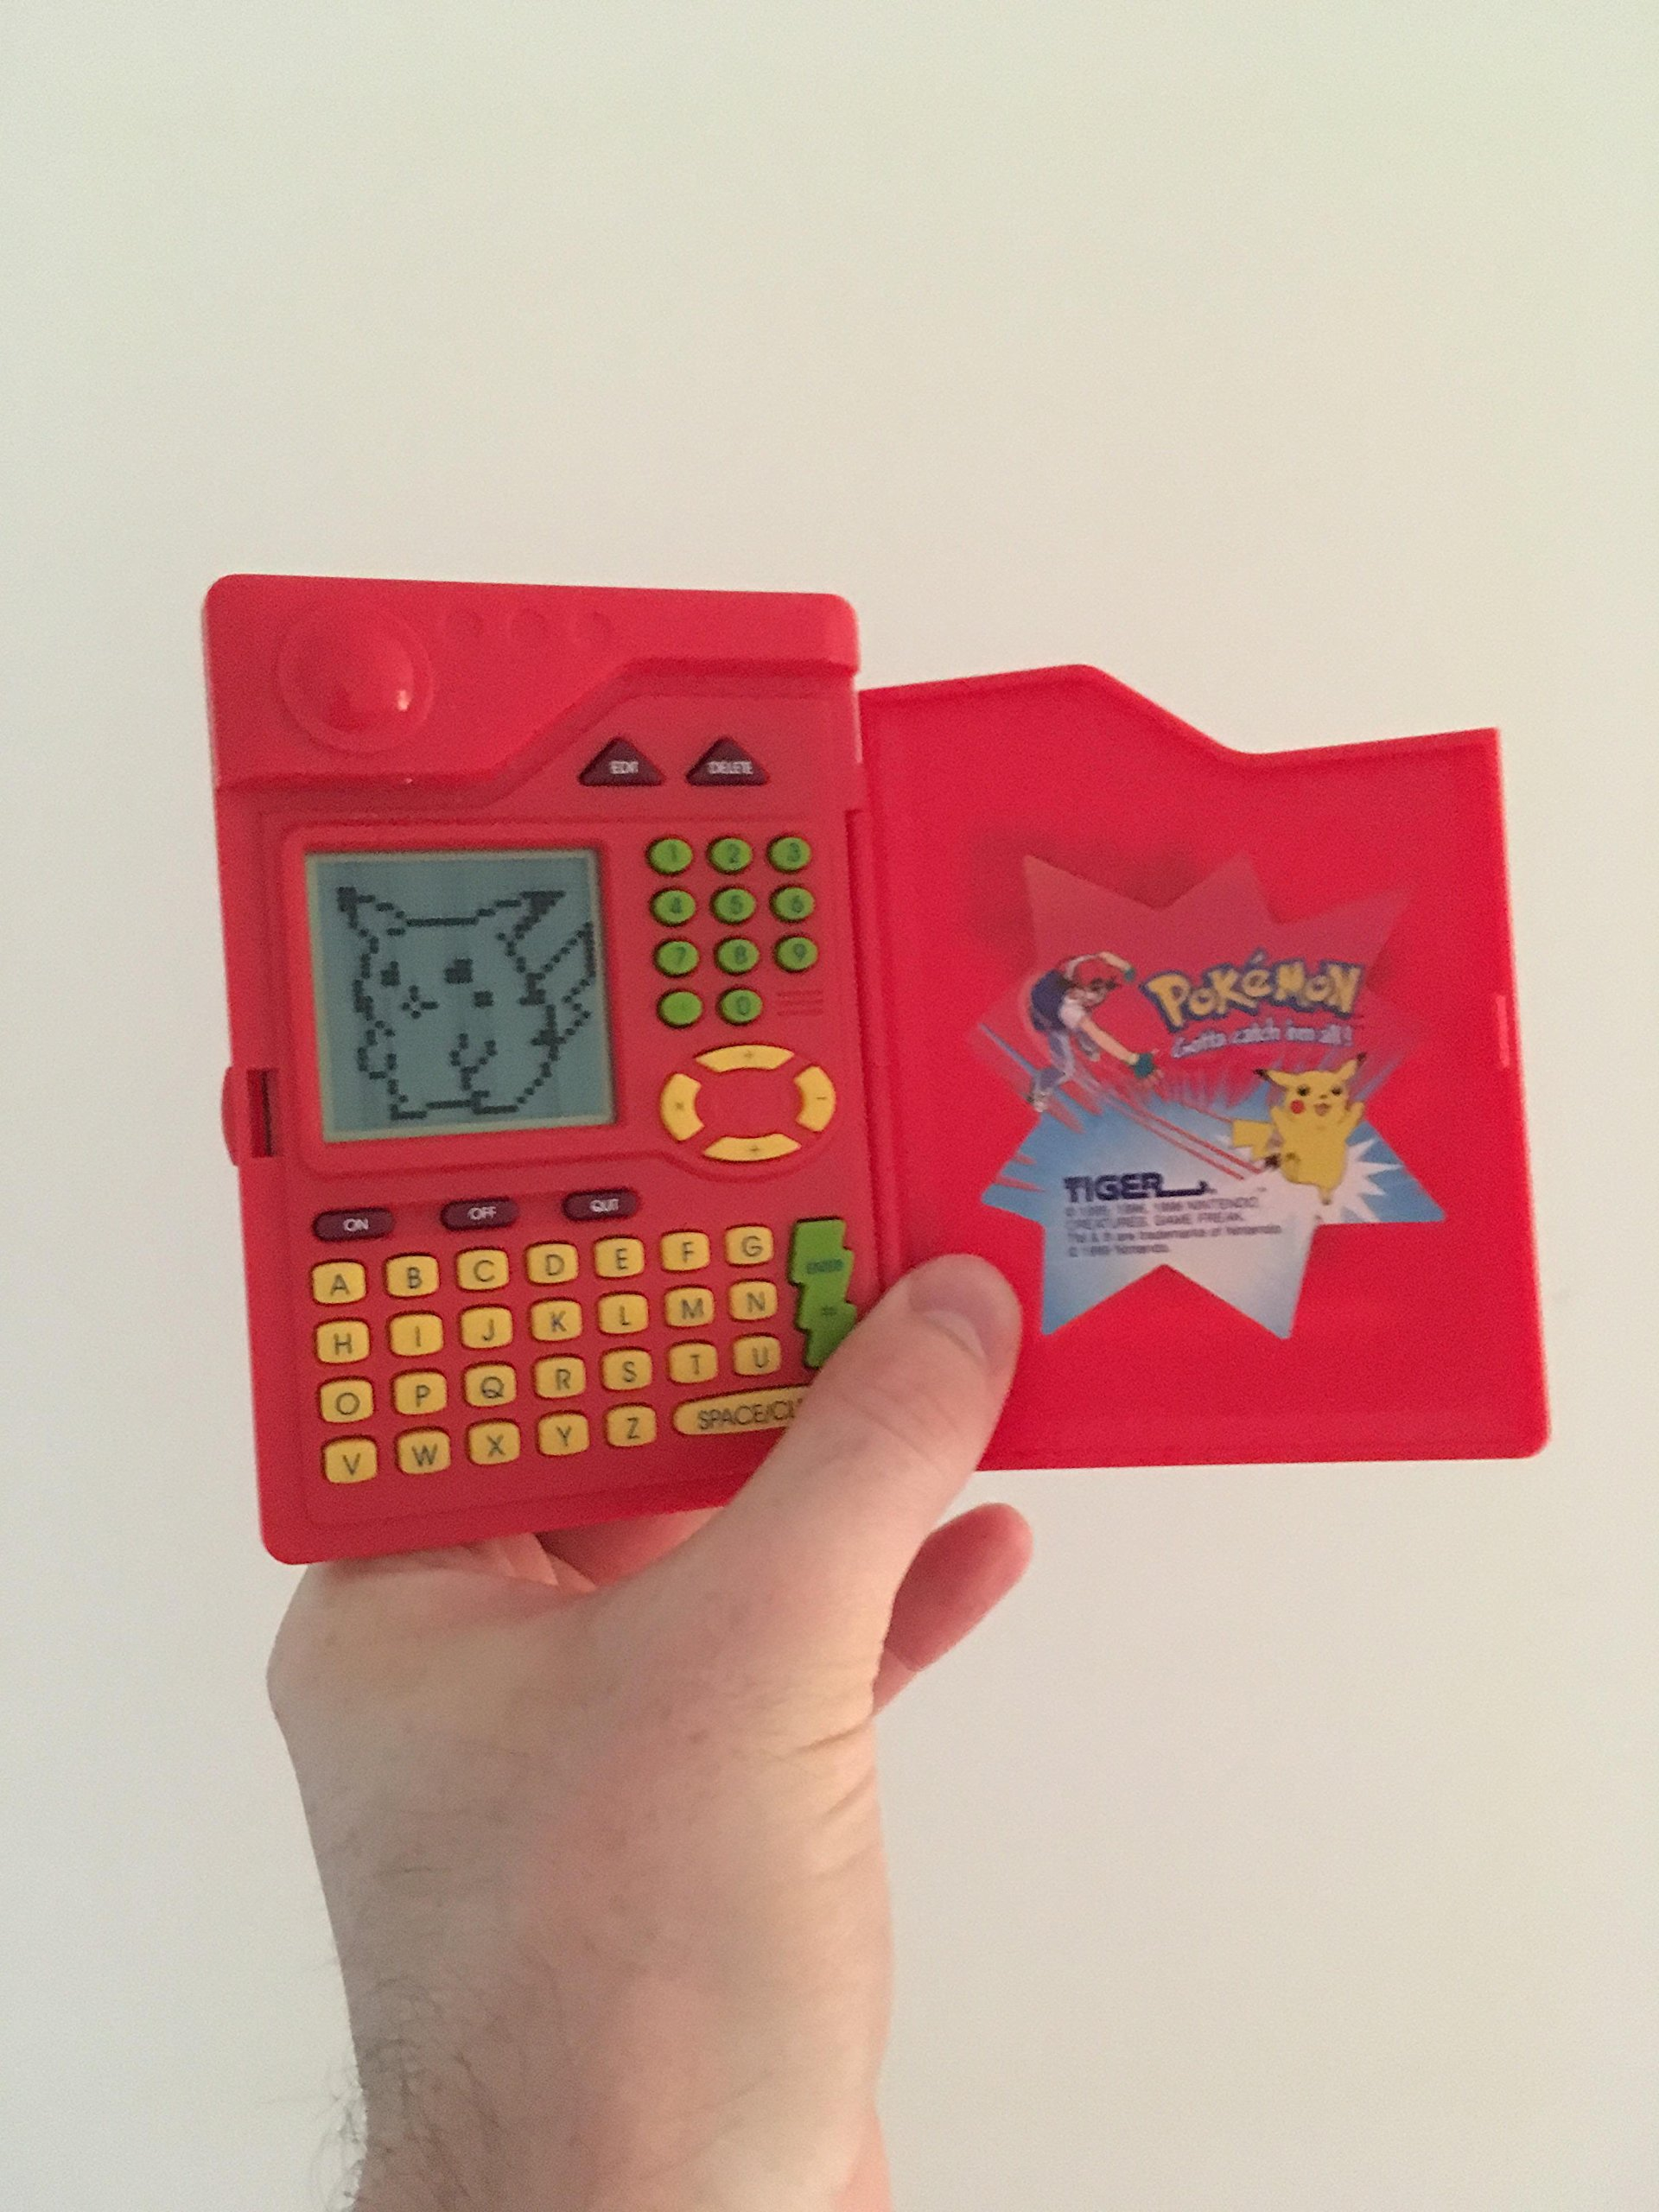 Pokemon Pokedex Organizer Electronic Handheld Game by Tiger Electronics